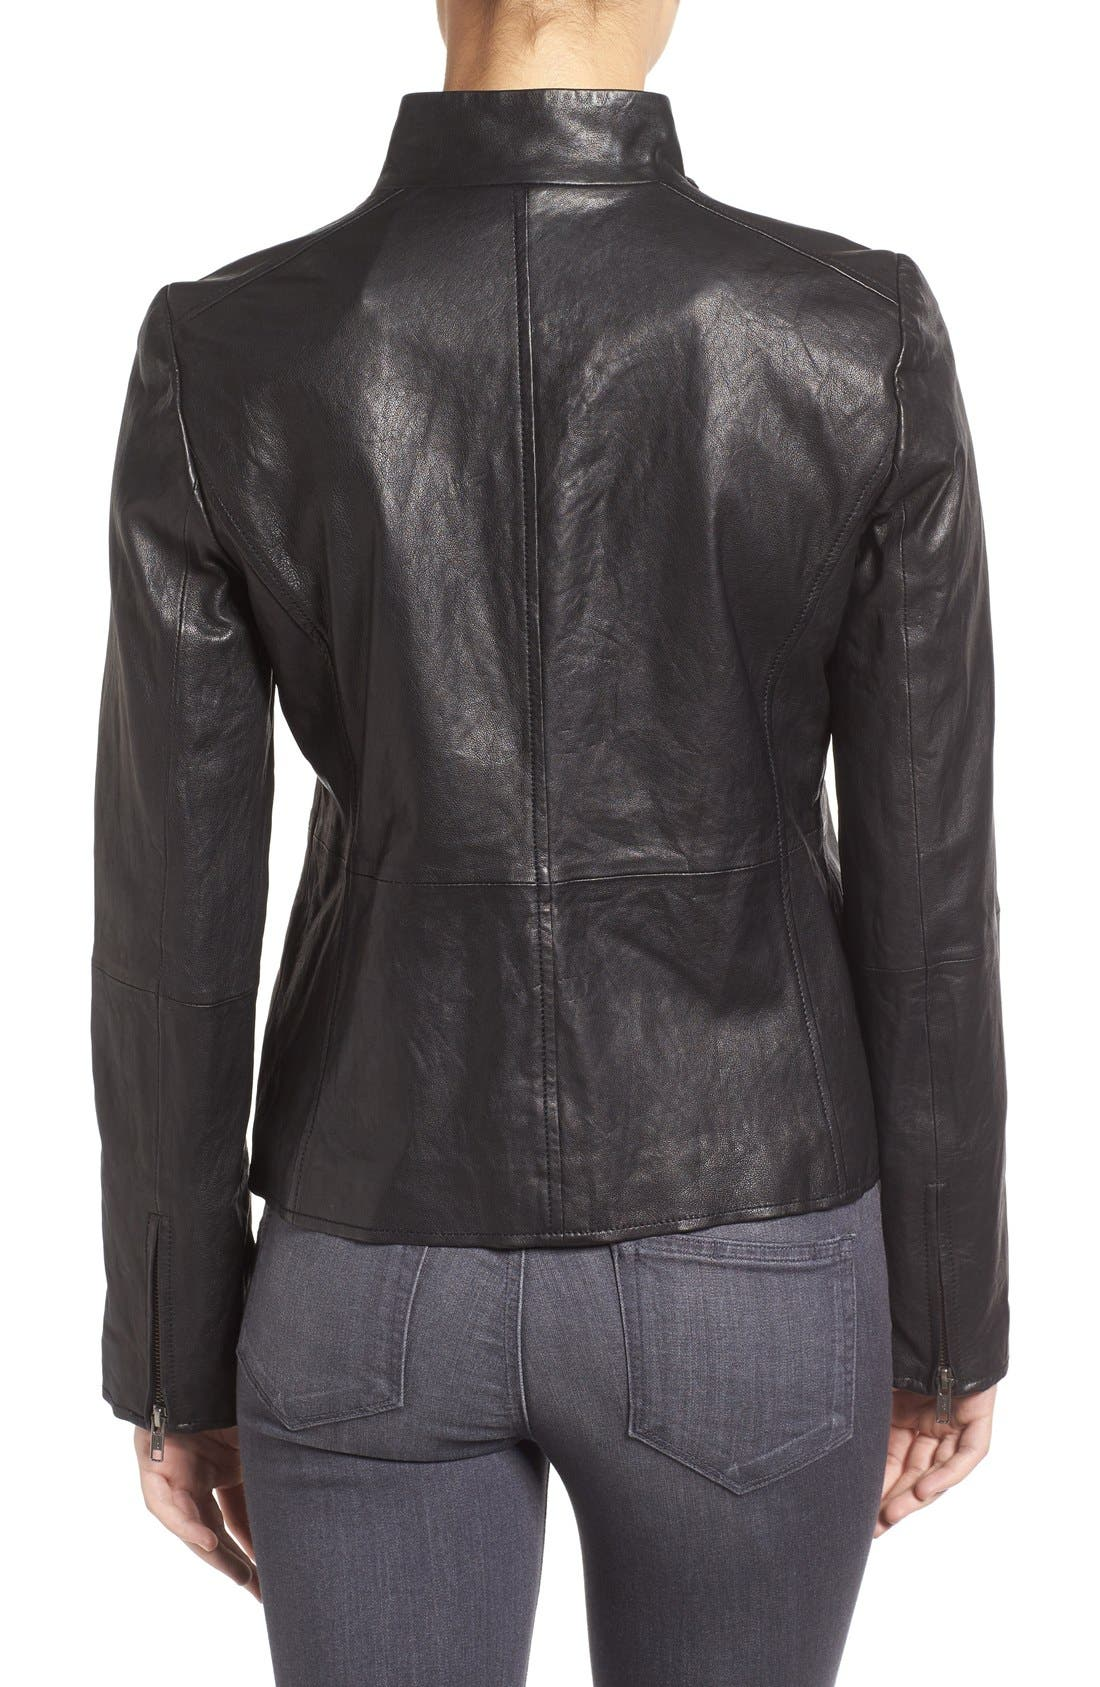 Rumpled Luxe Leather Stand Collar Jacket,                             Alternate thumbnail 2, color,                             Black